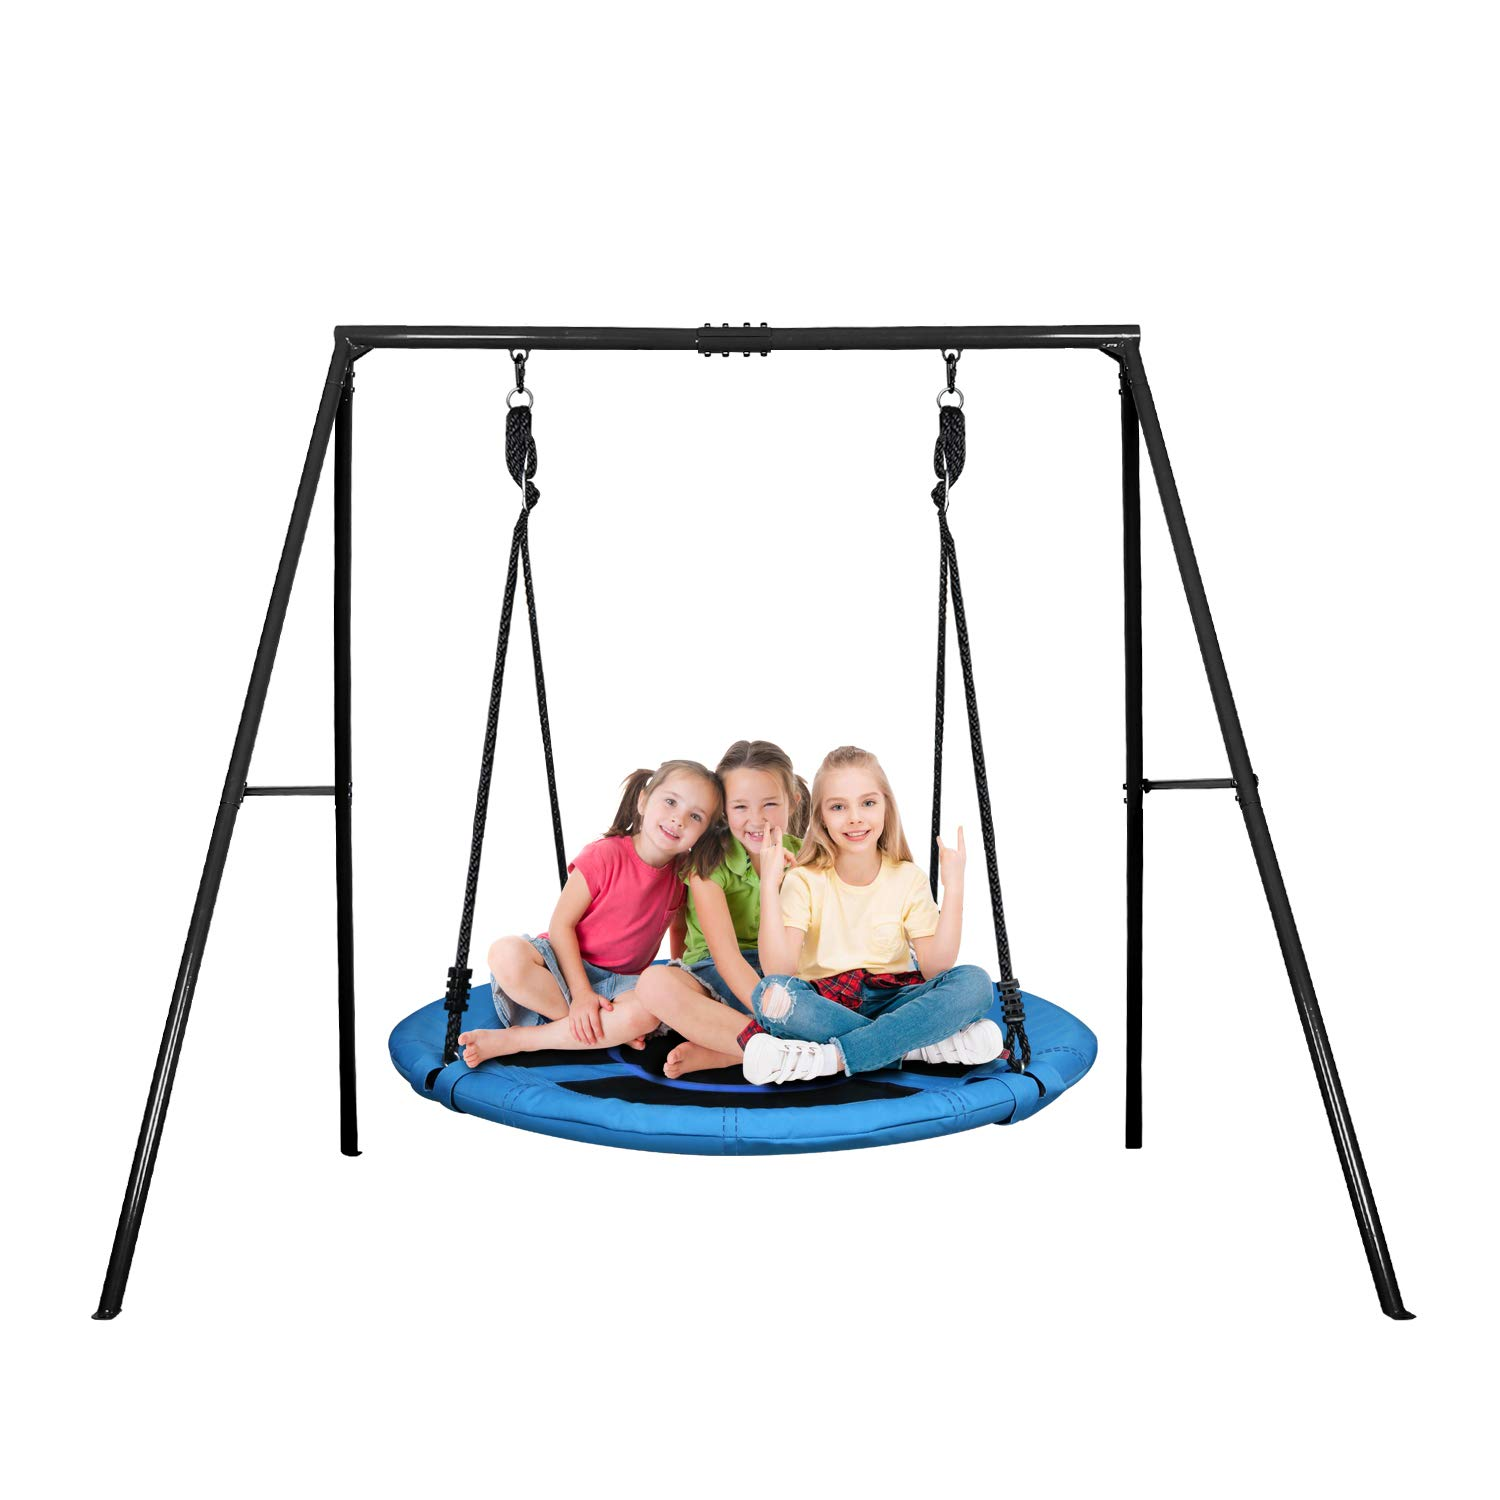 Trekassy 40 Inch Saucer Tree Swing Set with 440lbs Heavy Duty A-Frame Metal Swing Stand by Trekassy